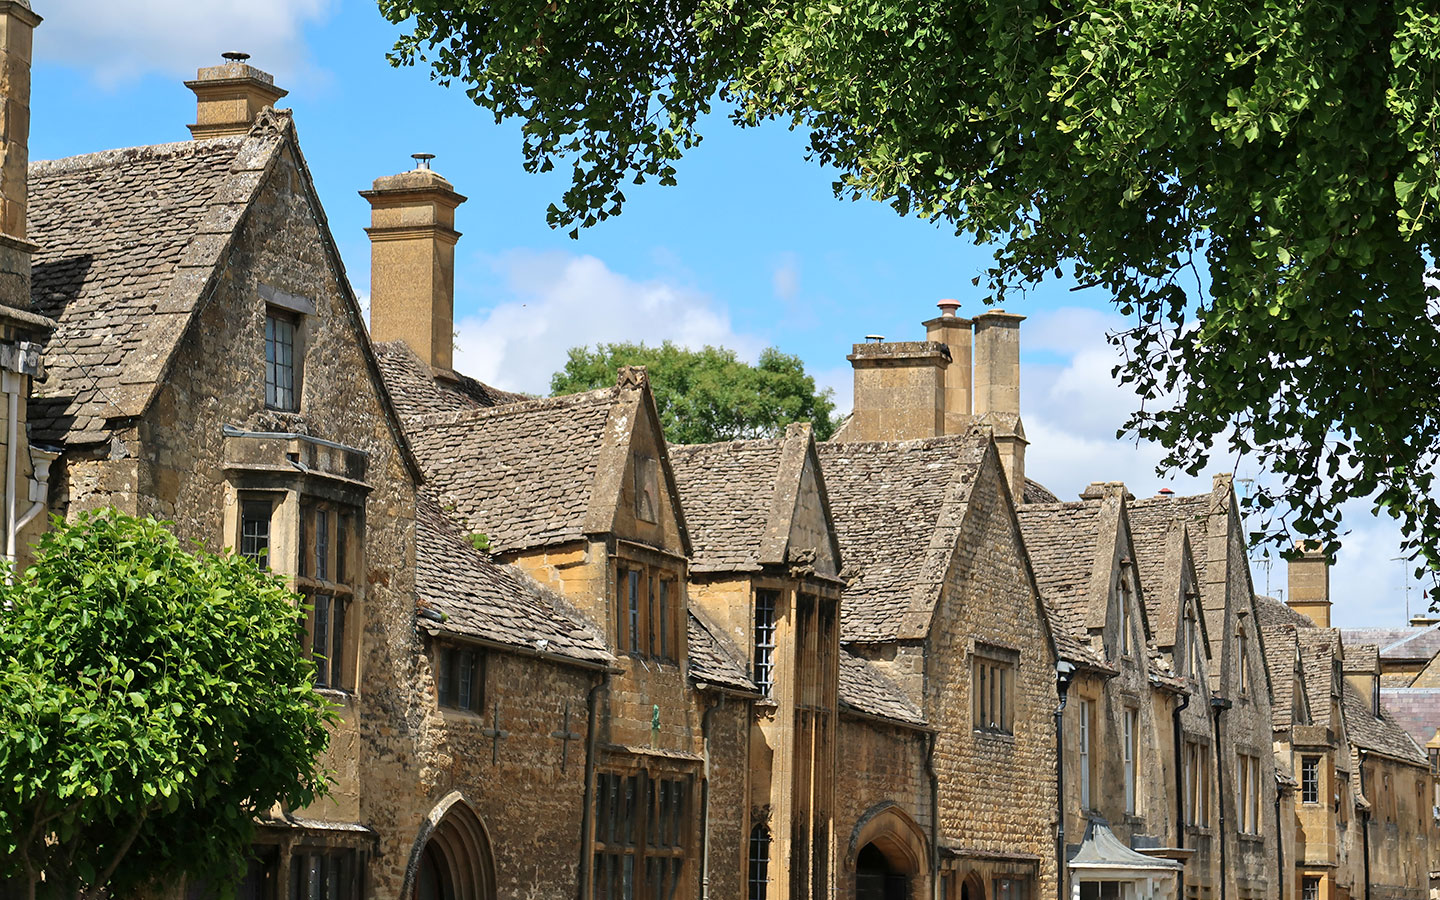 Grevel House in Chipping Campden [photo credit author]